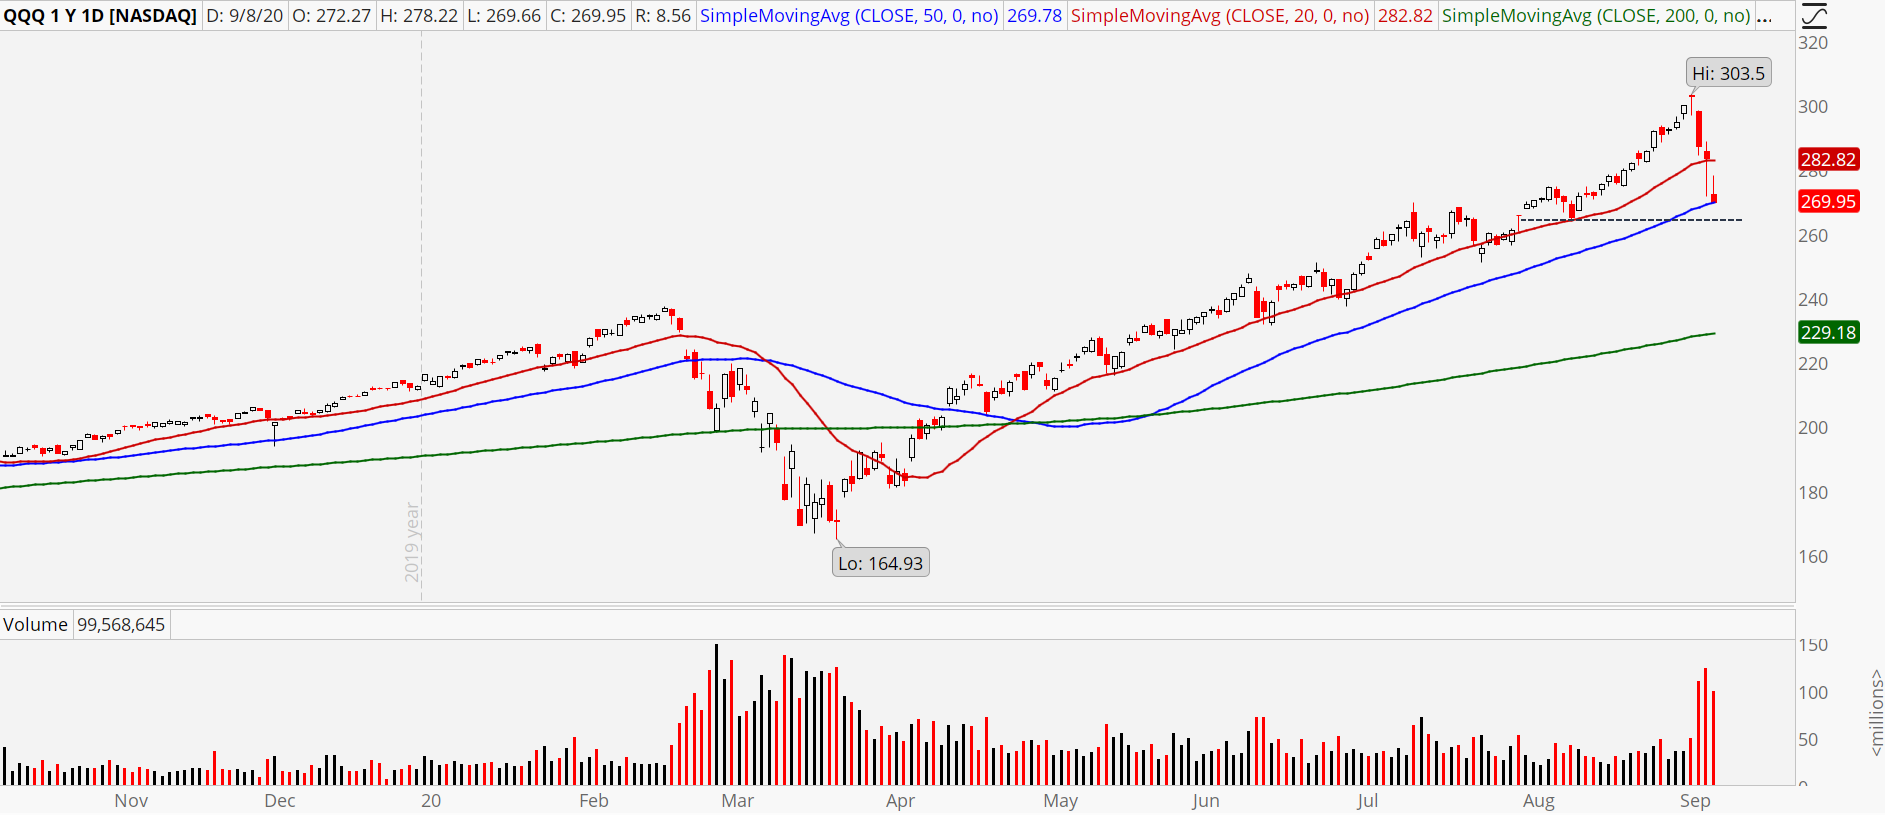 Powershares QQQ (QQQ) chart showing pullback to 50 moving average